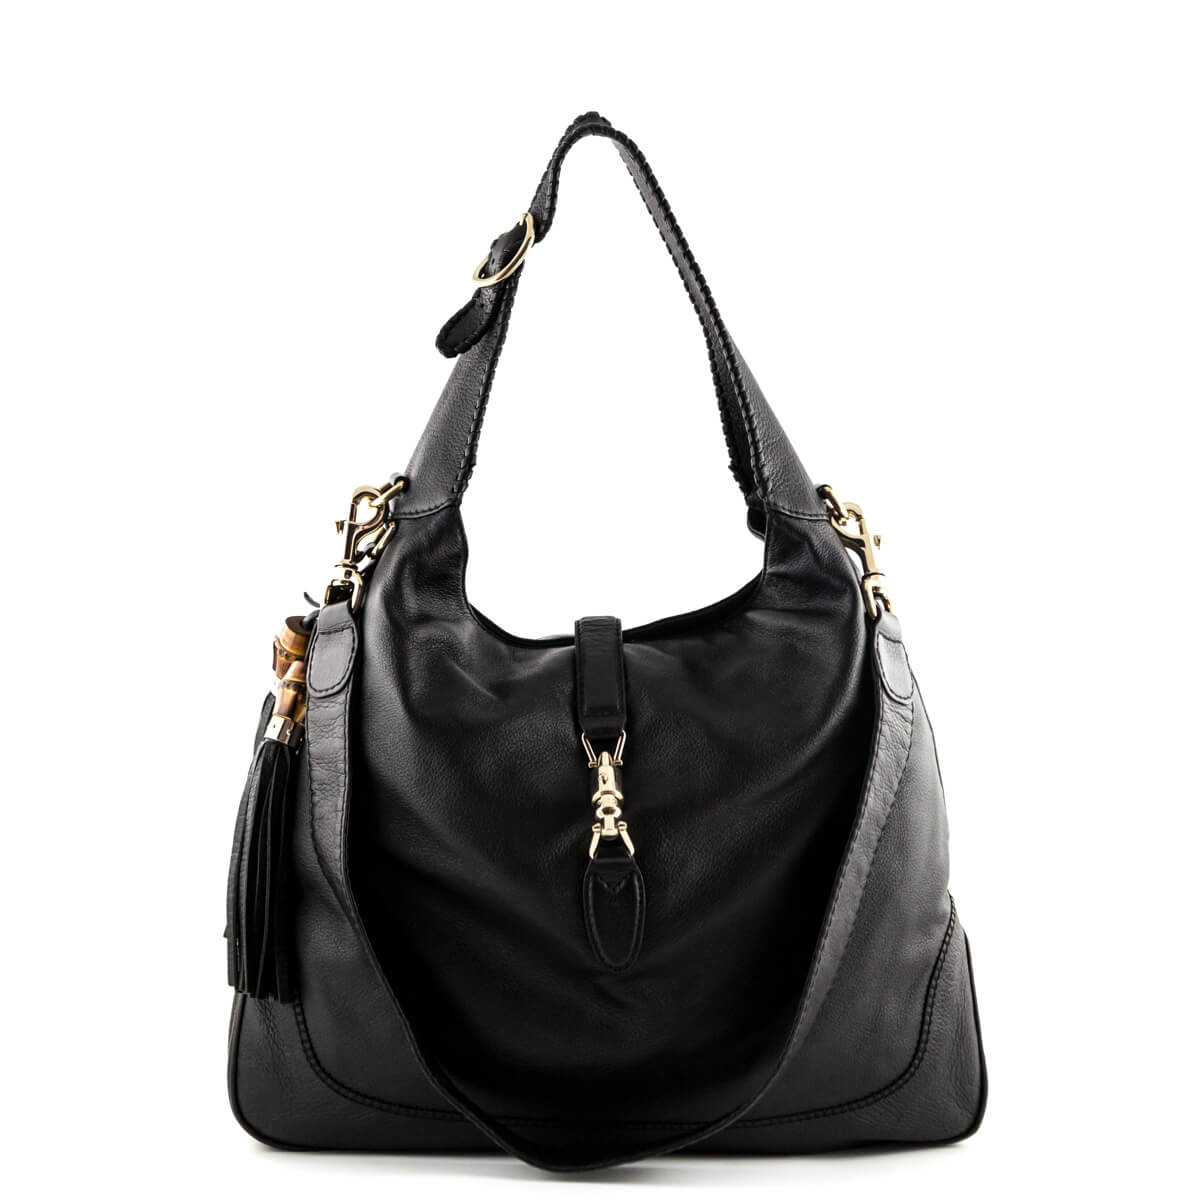 gucci bags canada. gucci black leather jackie hobo - love that bag preowned authentic designer handbags bags canada a